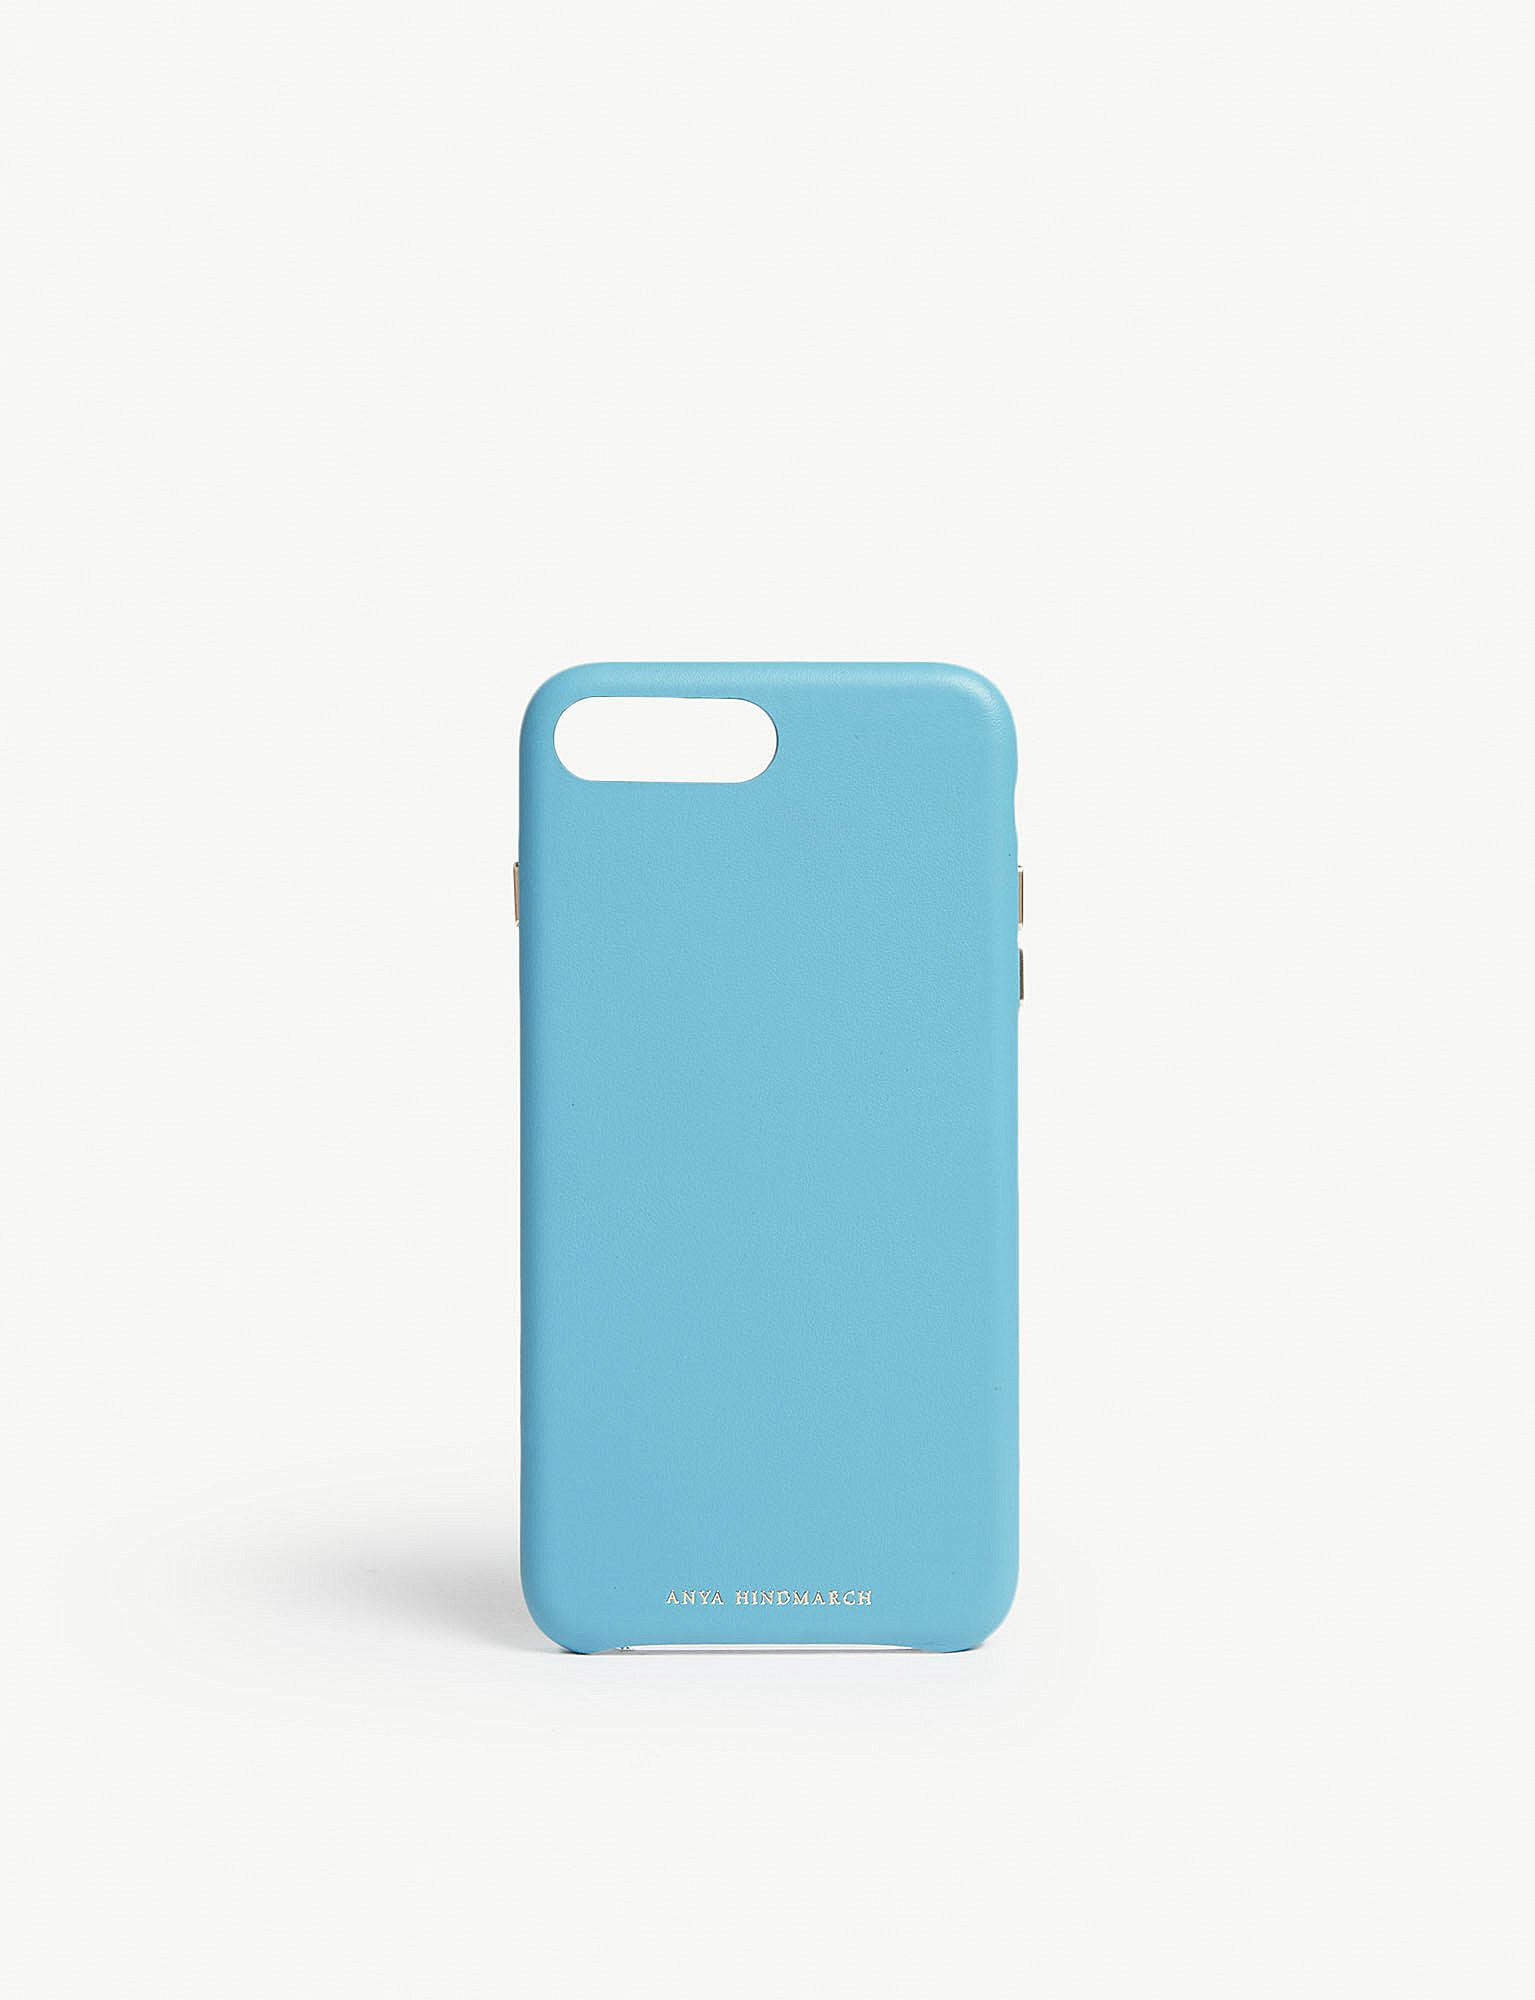 competitive price 79493 5a683 Lyst - Anya Hindmarch Leather Iphone 7/8 Plus Case in Blue